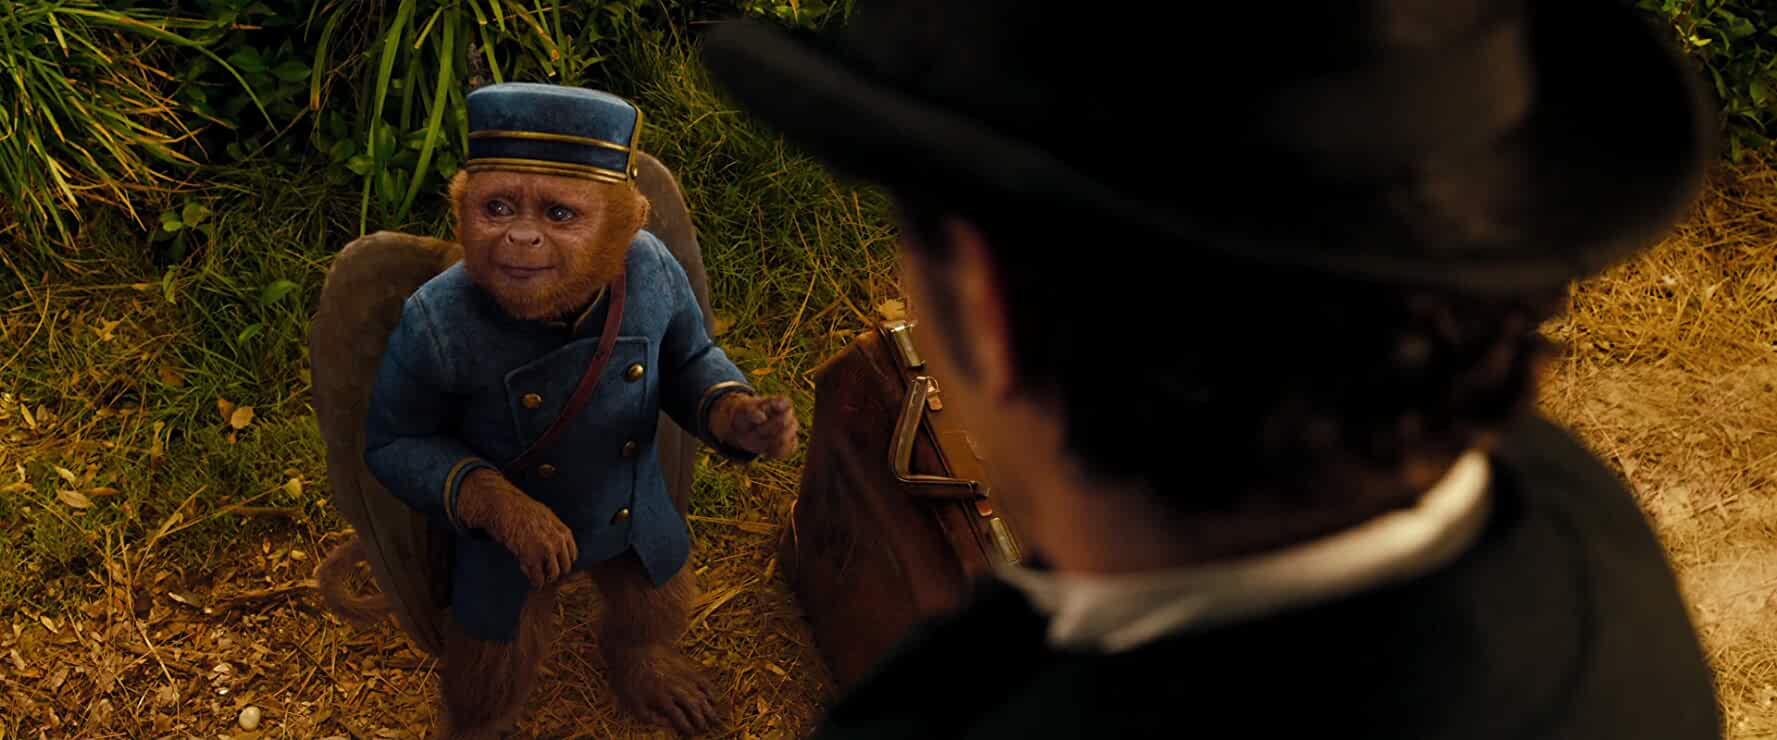 Zach Braff in Oz the Great and Powerful (2013)